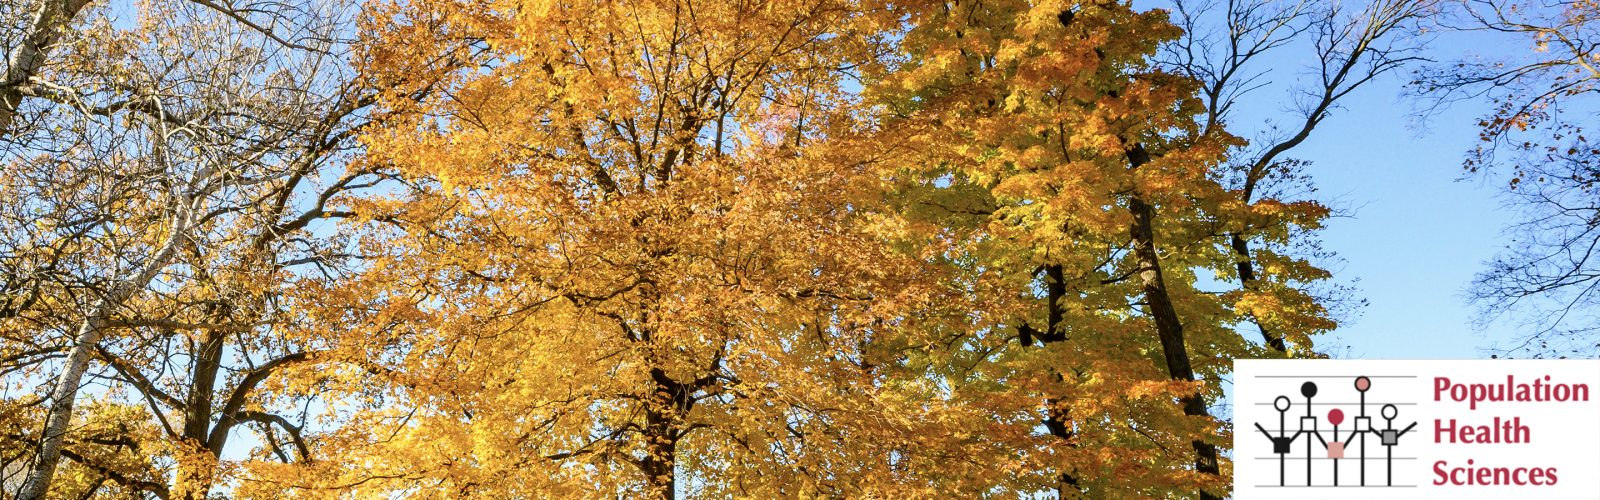 Fall scene, trees with yellow leaves